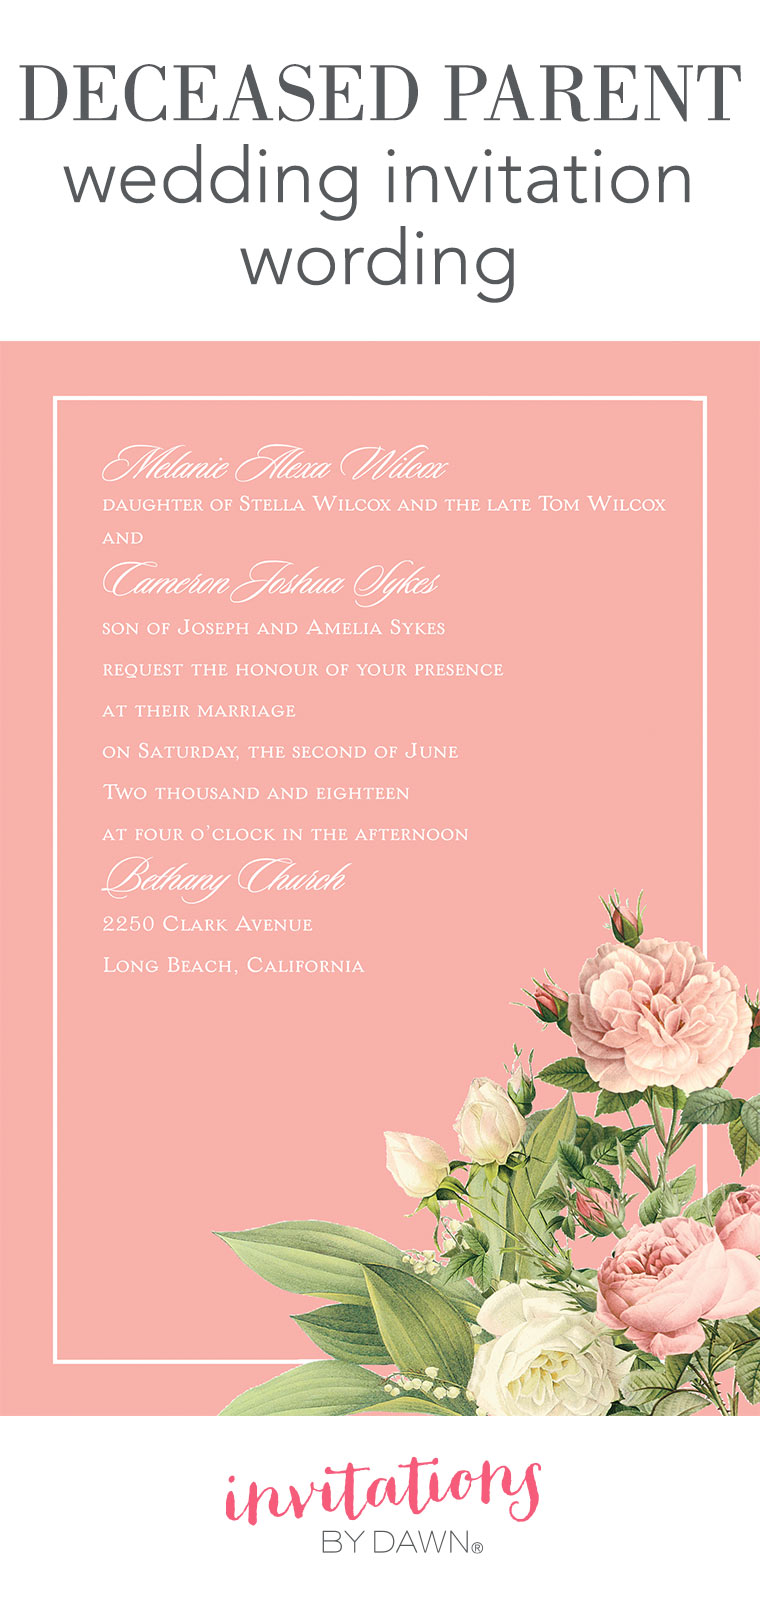 Deceased Parent Wedding Invitation Wording | Invitations by Dawn